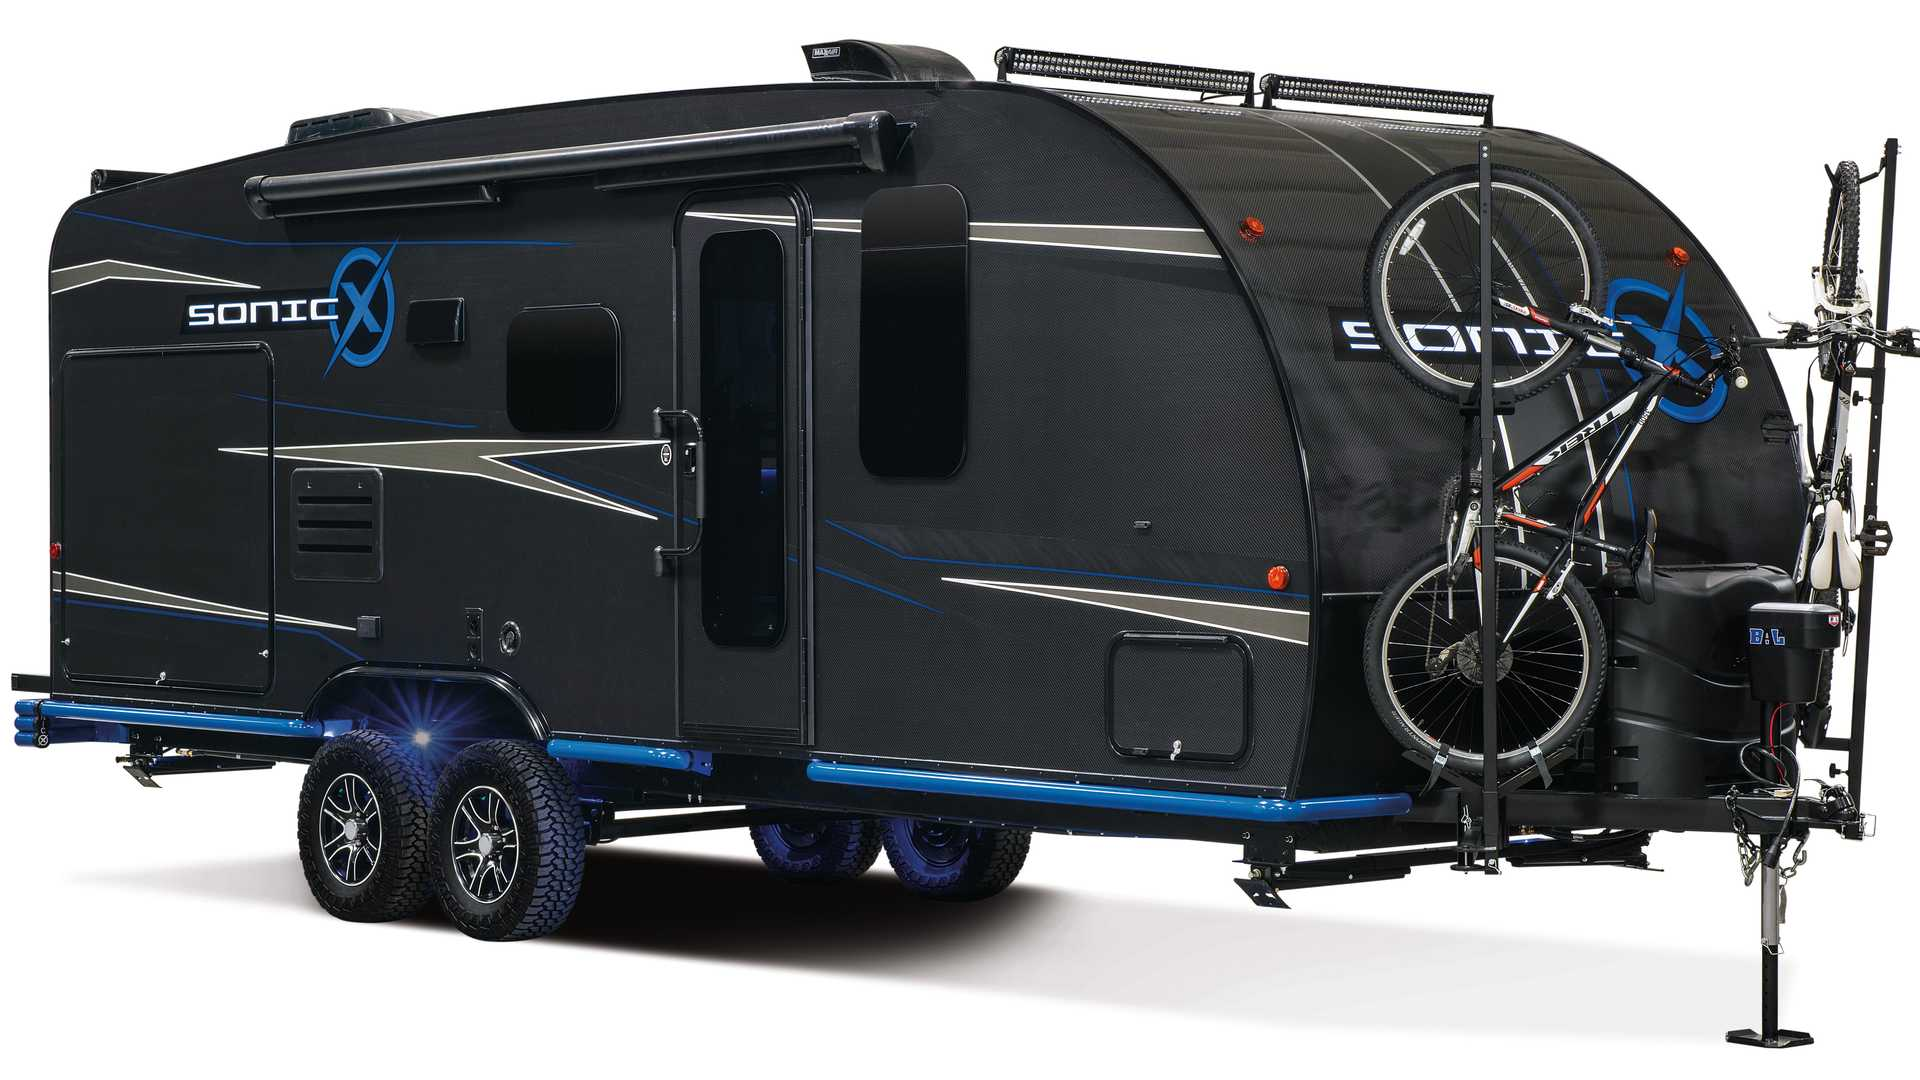 Sonic X RV Trailer Is A Fully Sustainable, Carbon Fiber Camper